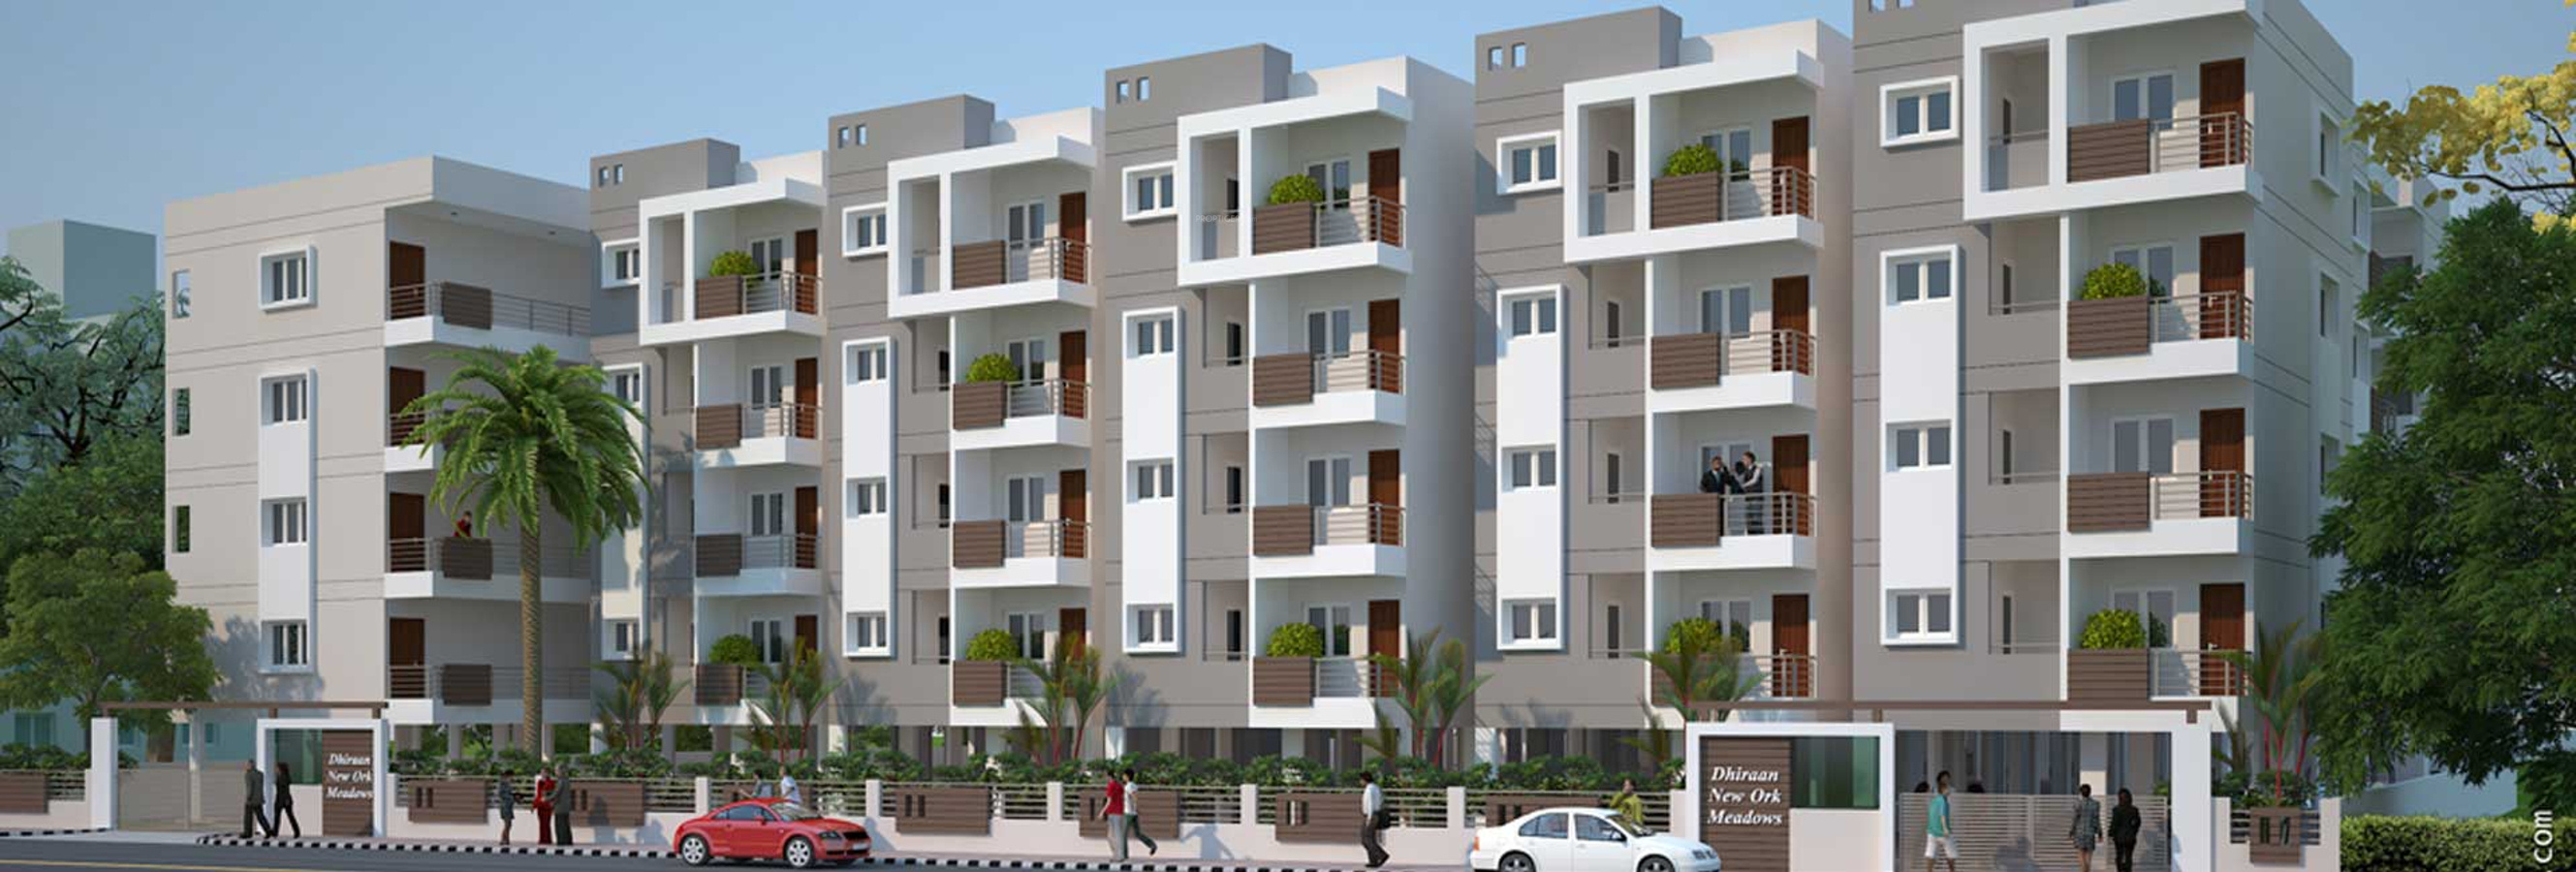 640 Sq Ft 1 Bhk 1t Apartment For Sale In Dhiraan Newyork